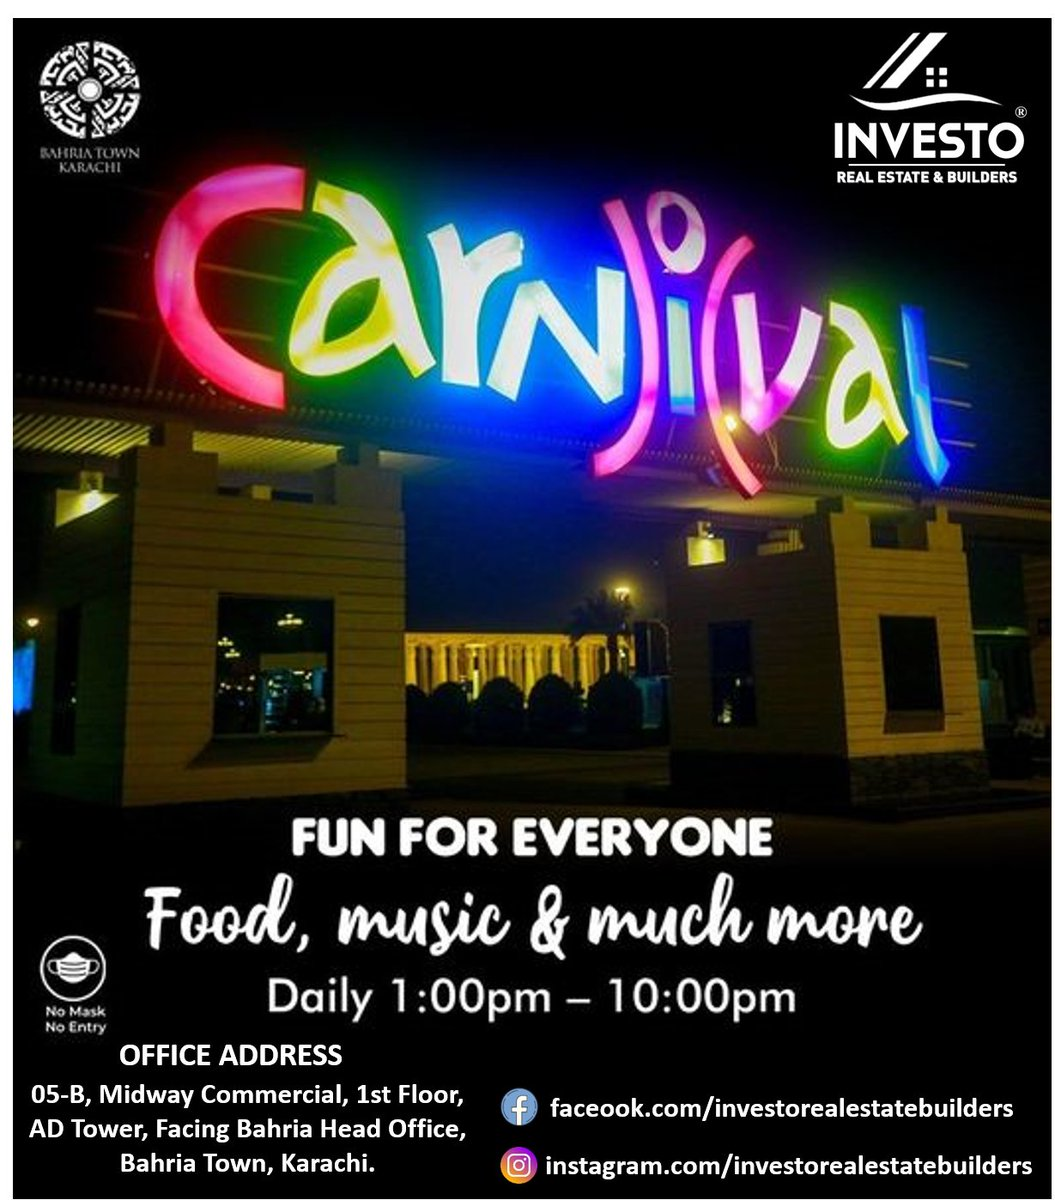 """Nothing compares to the luxury of quality time with the family combined with an ultimate enjoyment at the """"Carnival Area"""" Bahria Town Karachi #HappyWeekend #CarnivalArea #Fun #Food #Entertainment #BahriaTown #Karachi #BahriaTownKarachi"""